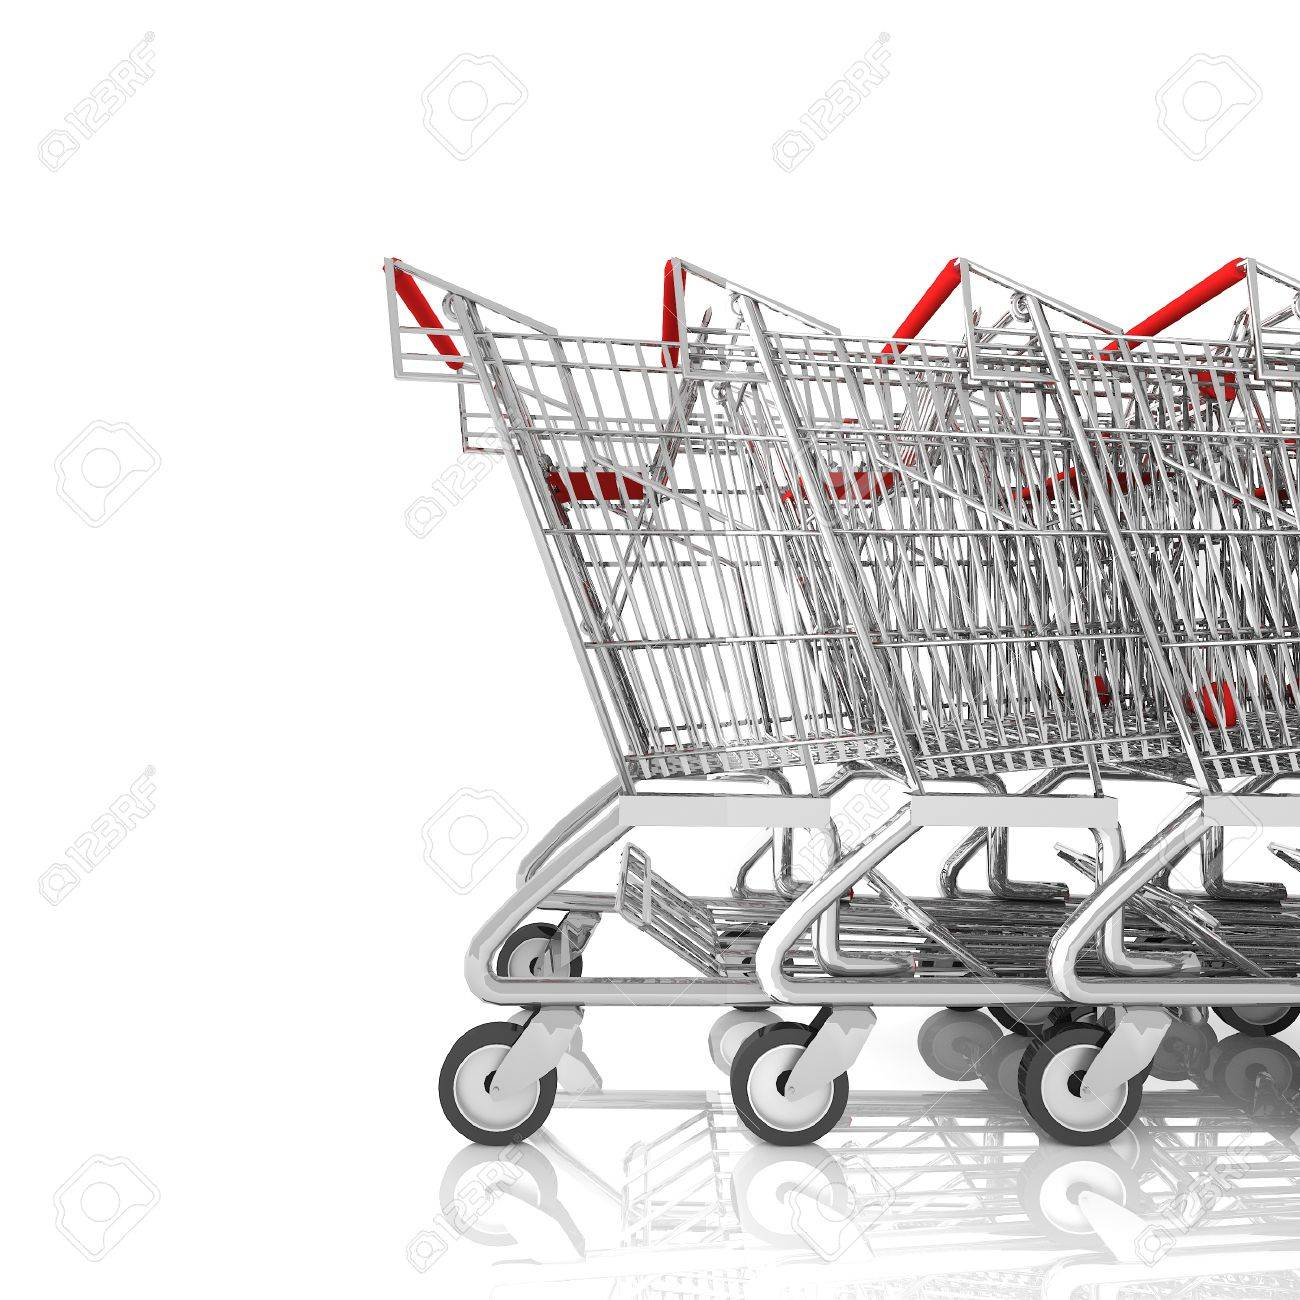 Shopping cart on a parking lot isolated on white,3d rendering - 46696124